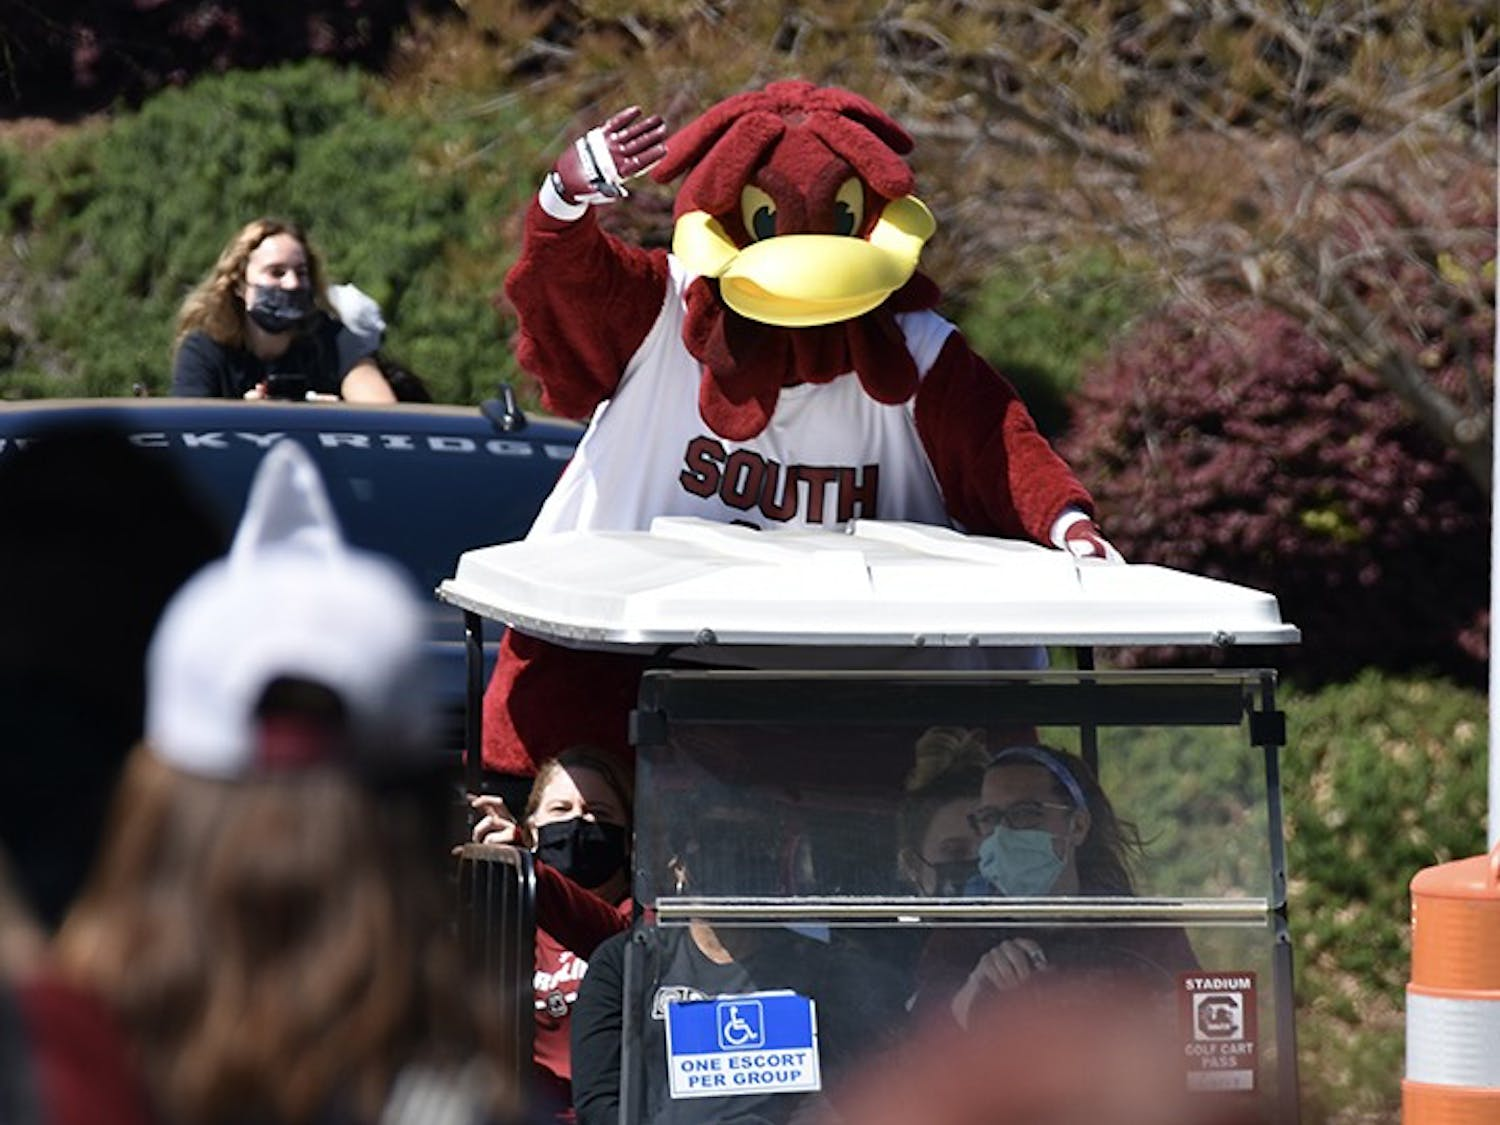 A golf cart leads the procession of Gamecock women's basketball players, with Cocky waving at the team's fans from the back of it.